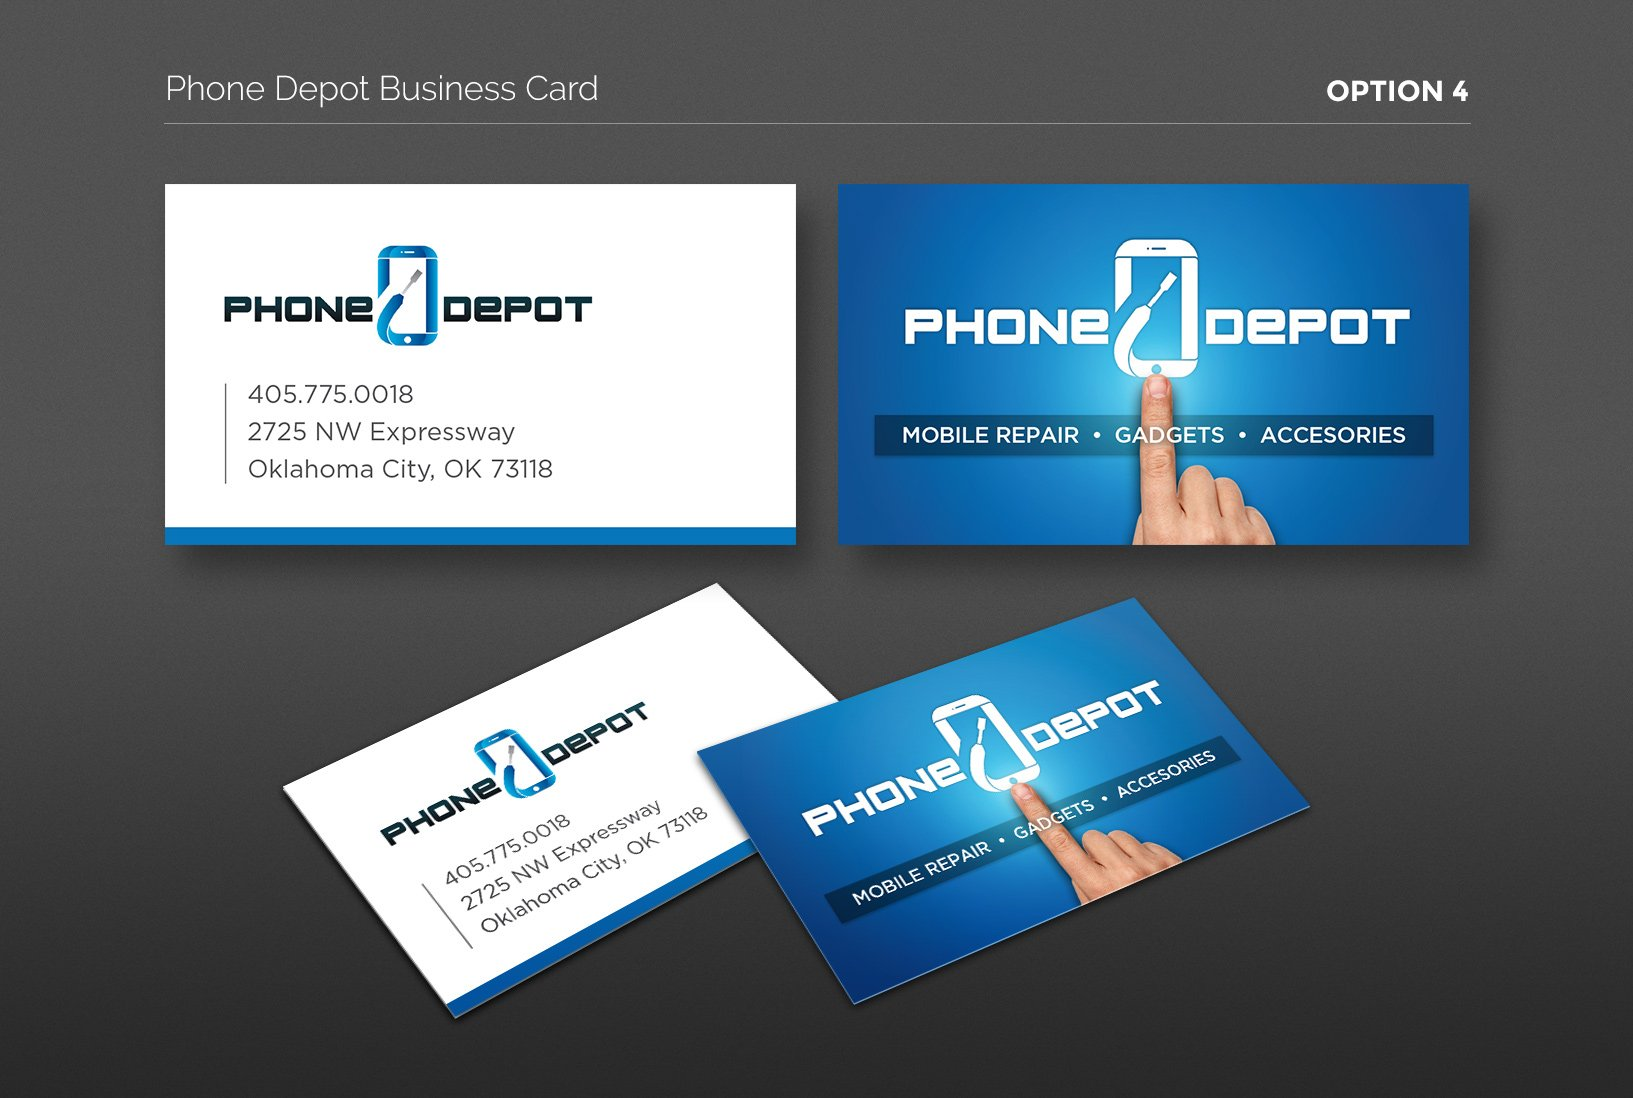 Depot business card design 4 phone depot business card design 4 magicingreecefo Images